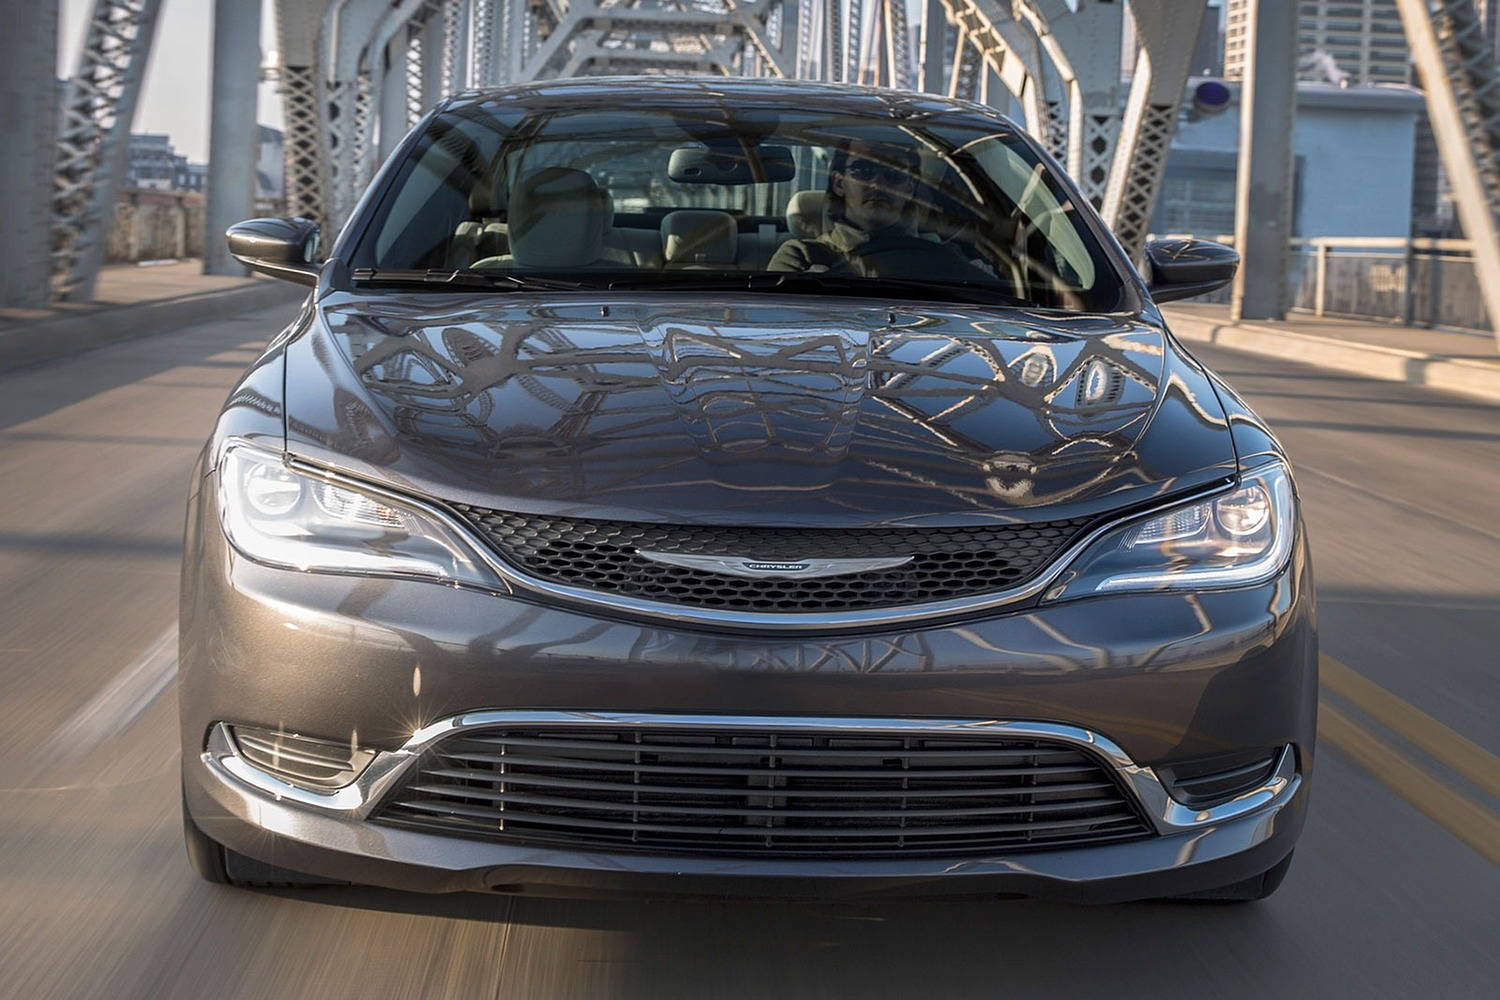 2016 Chrysler 200 Limited Sedan Exterior Shown